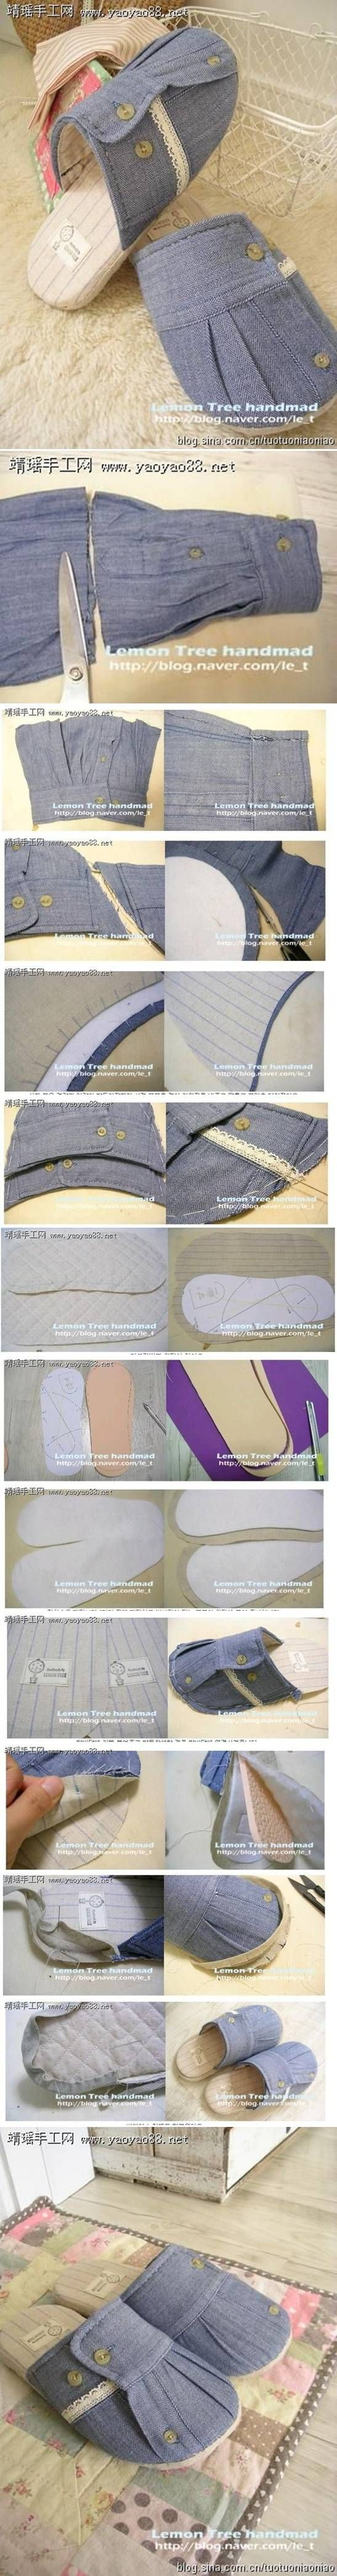 DIY Old Clothes Cuff Slipper